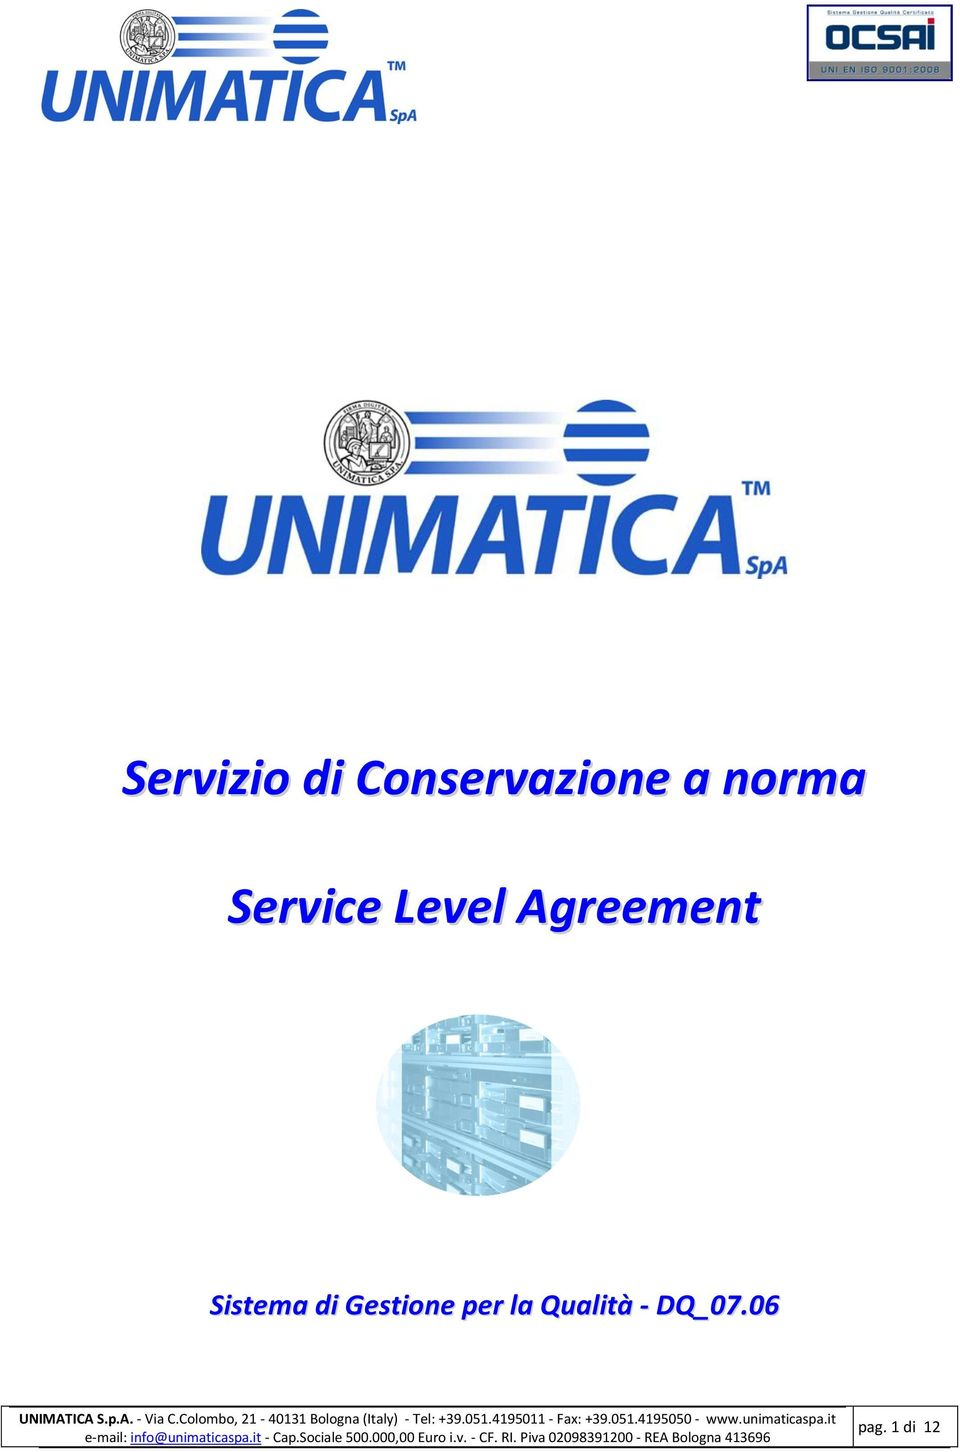 Agreement Sistema di